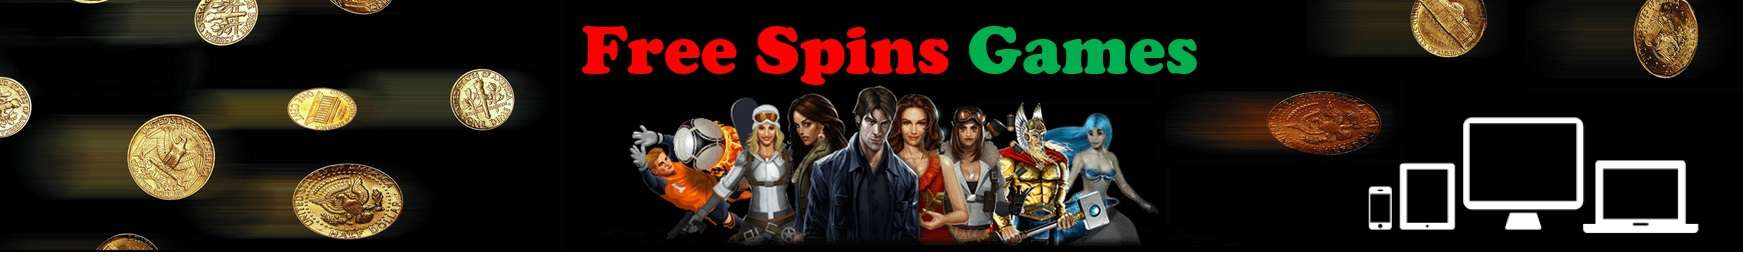 Free Spins Games No deposit bonuses, gratis spins, free bets, free chips, freerolls, and exclusive offers every day!